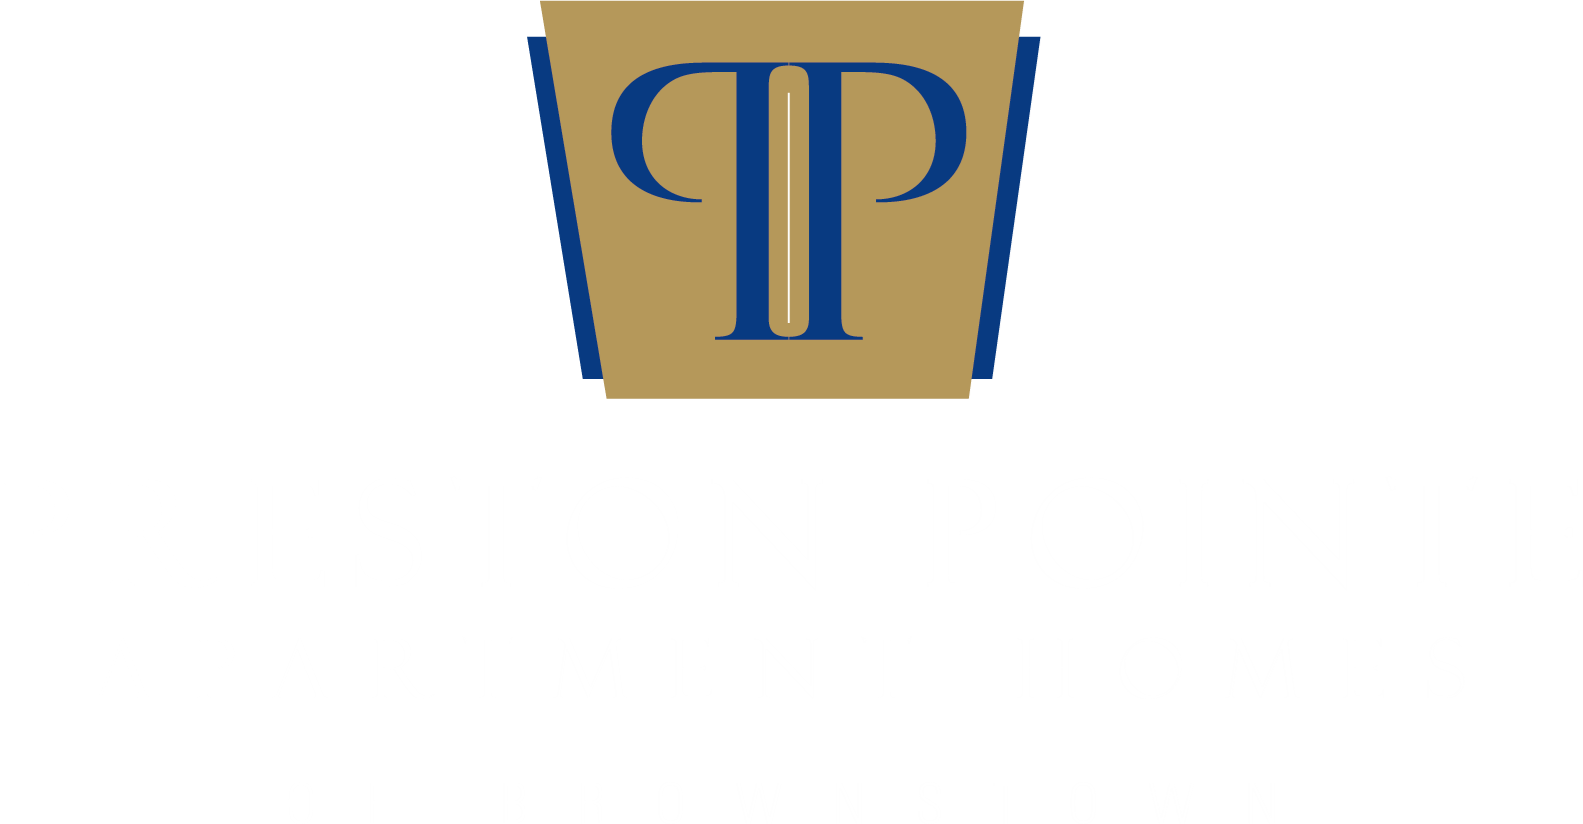 Brownstown Property Logo 1